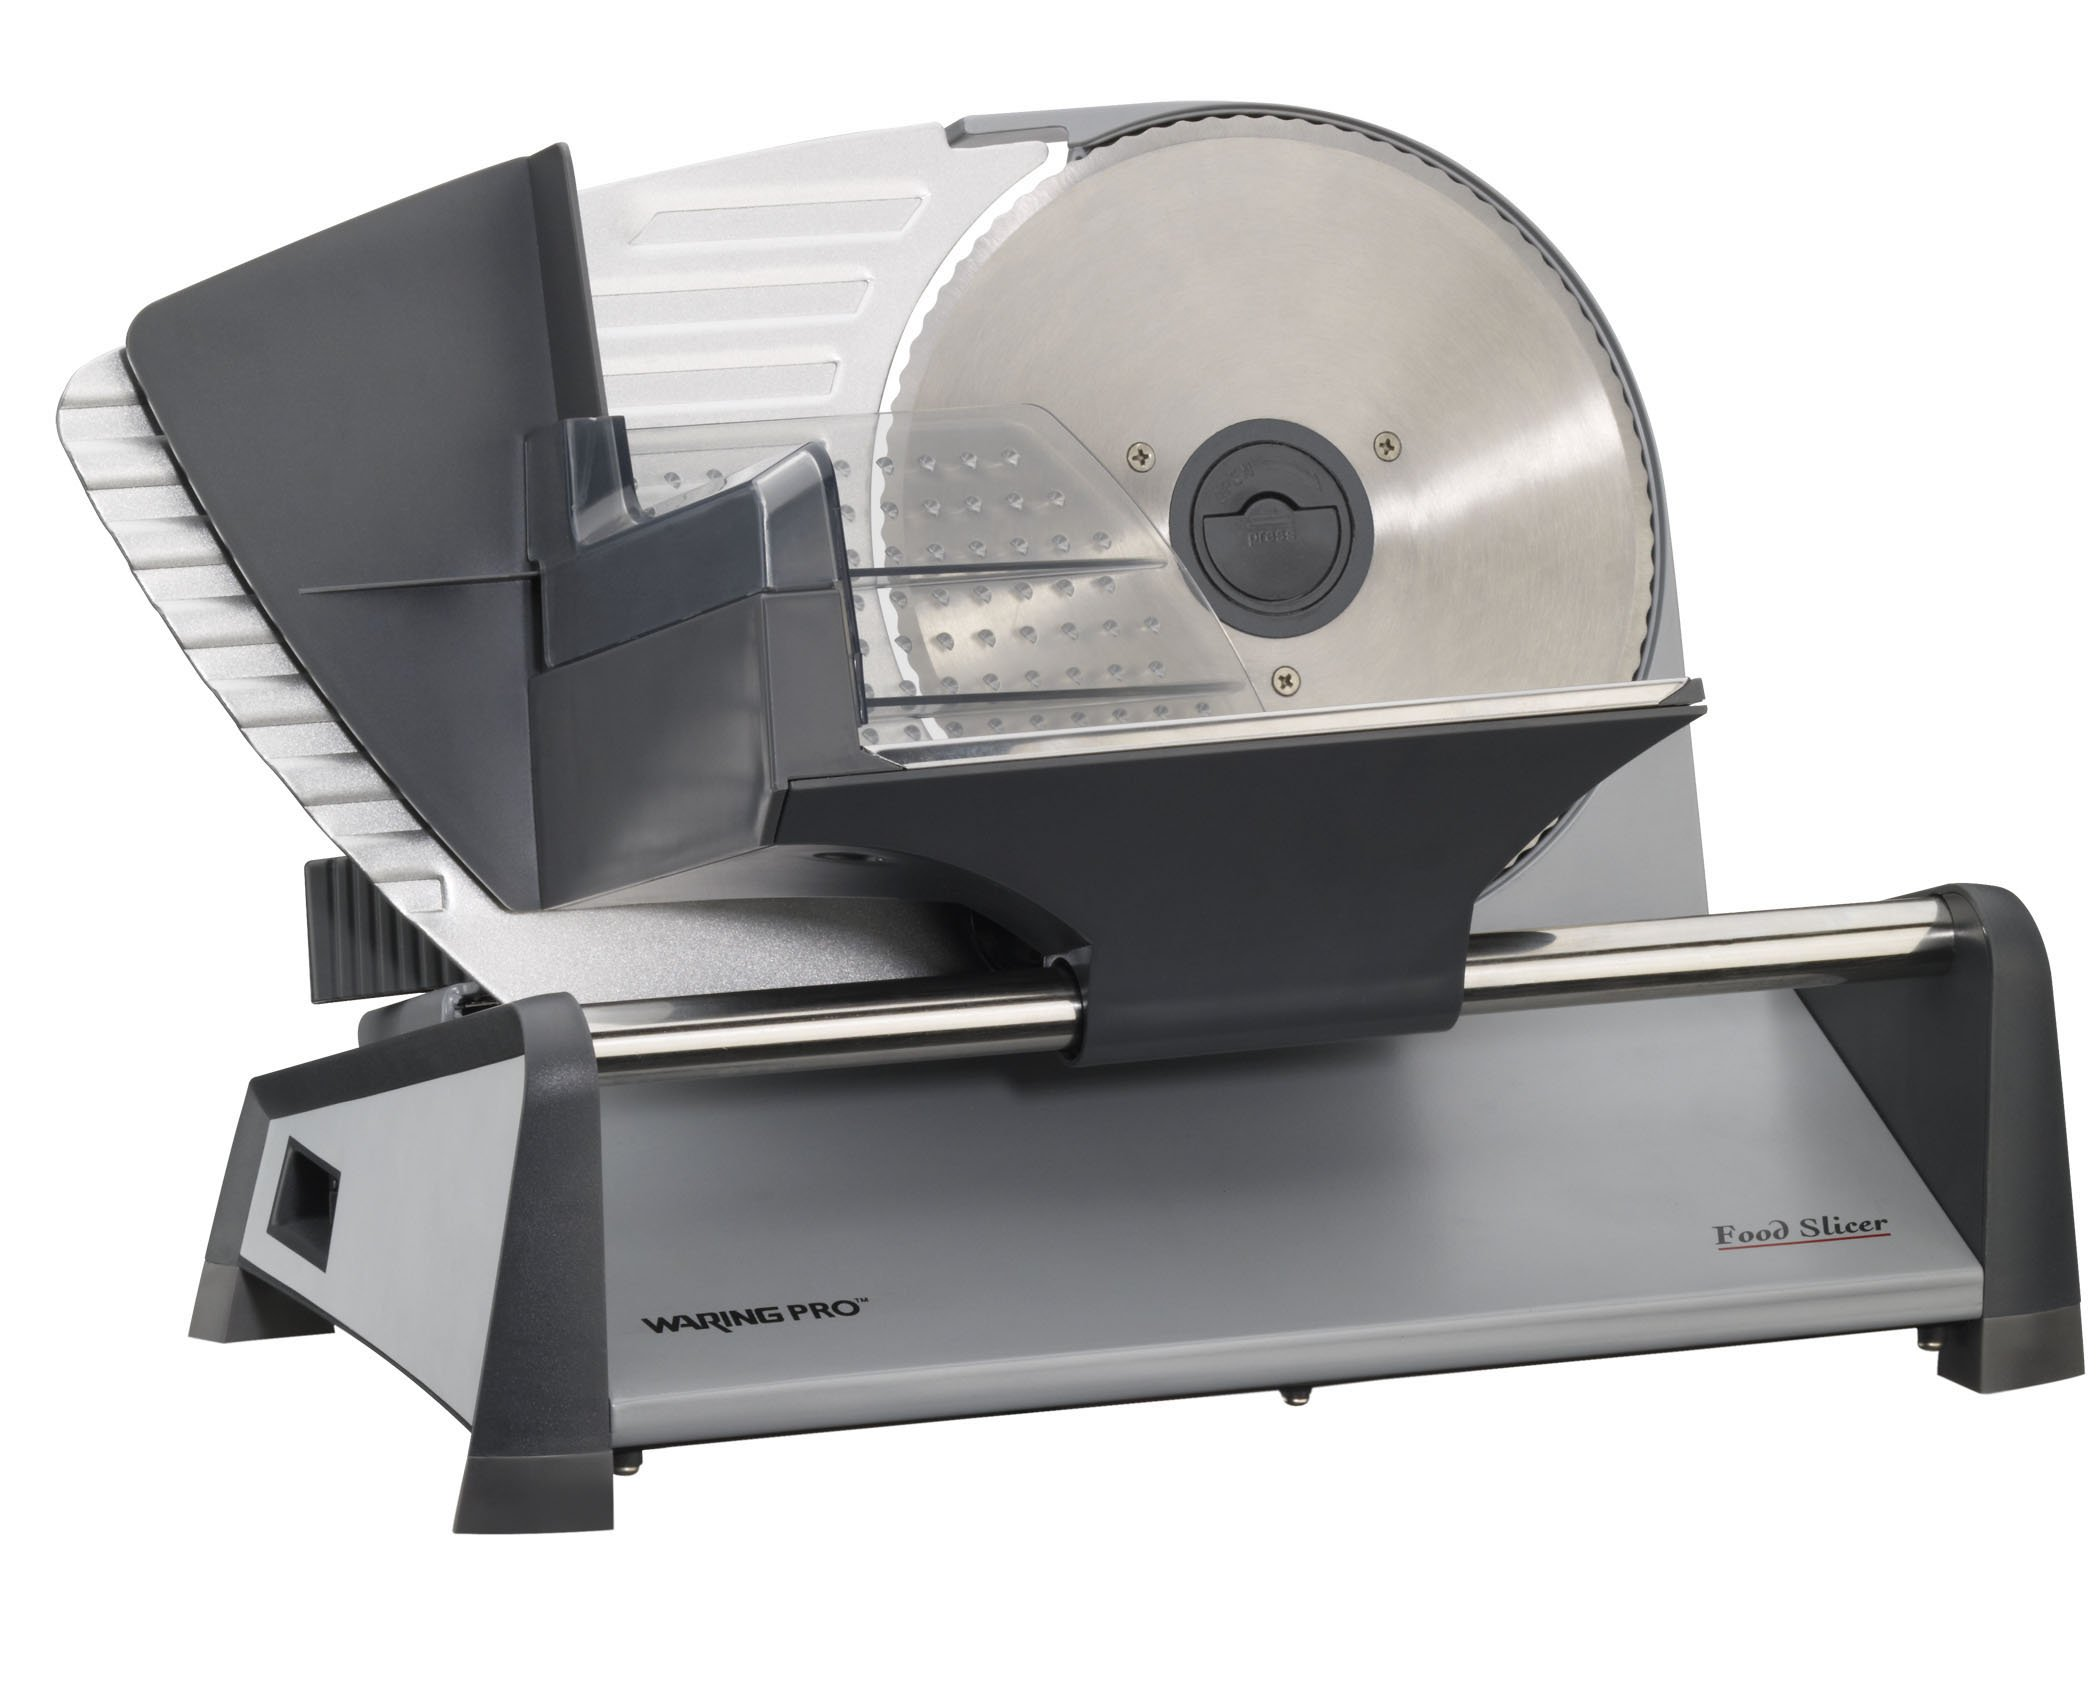 Waring Pro FS155AMZ Professional Food Slicer, Stainless Steel by Waring